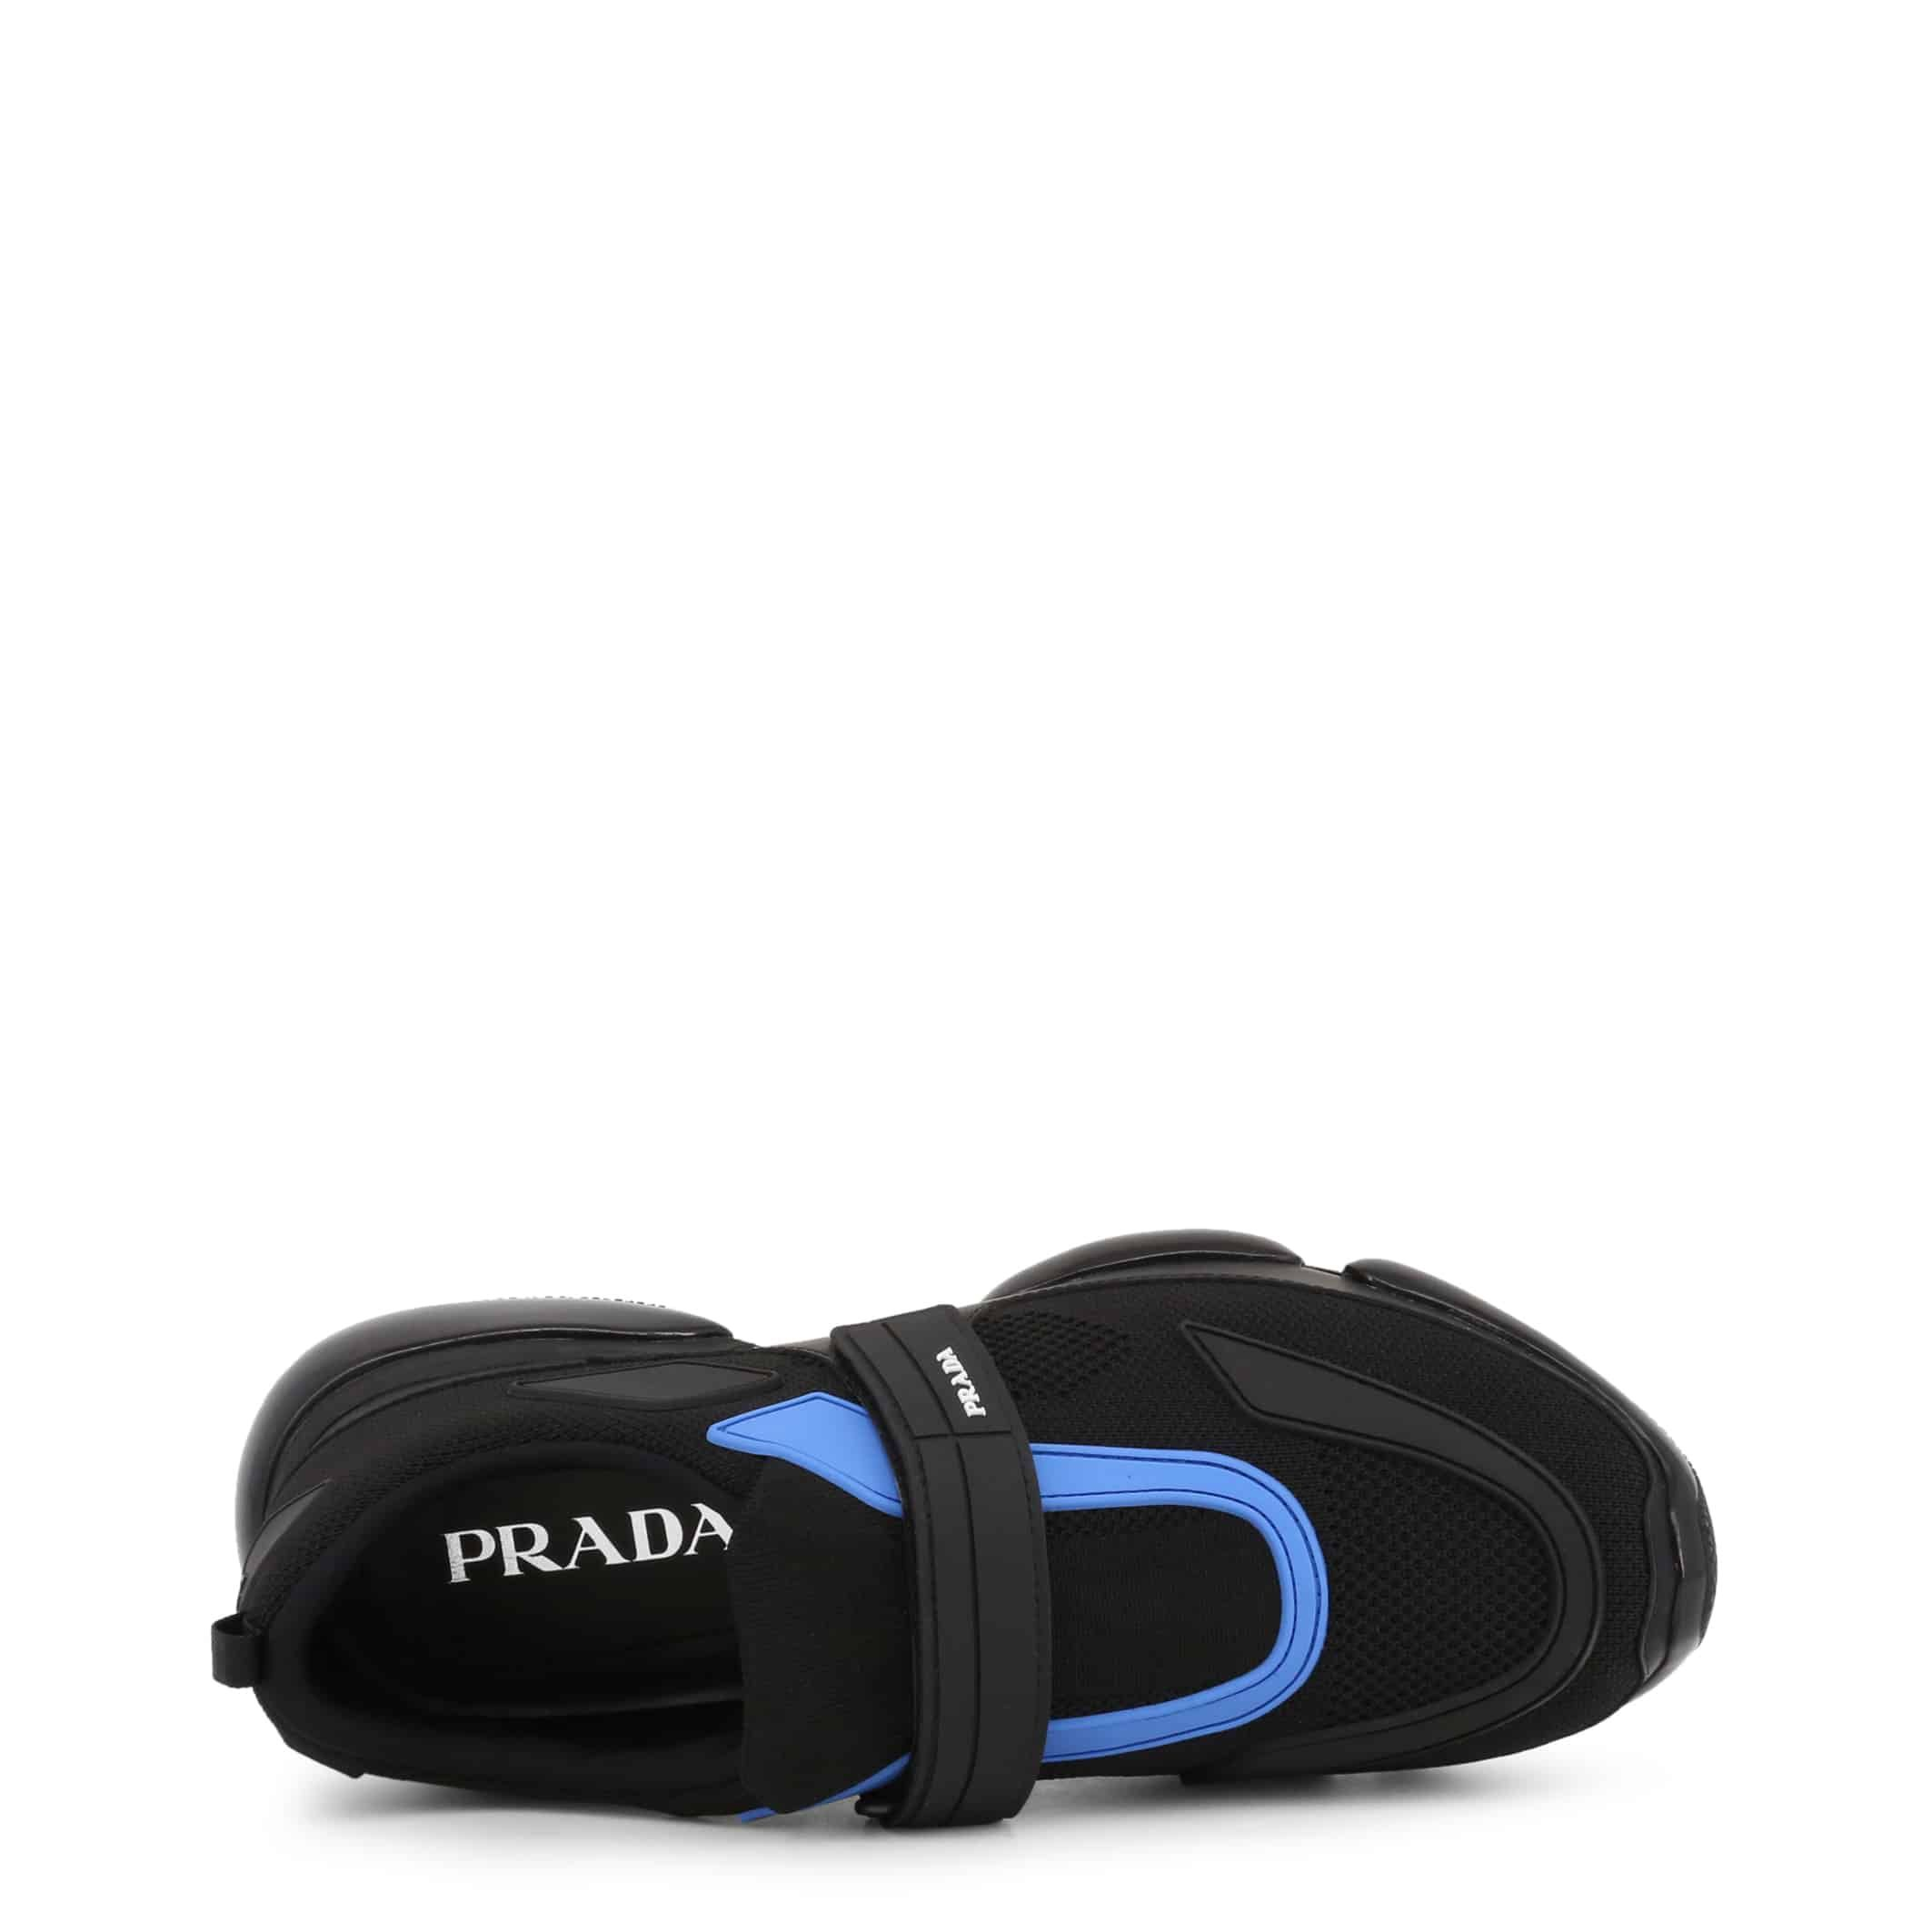 Prada | You Fashion Outlet